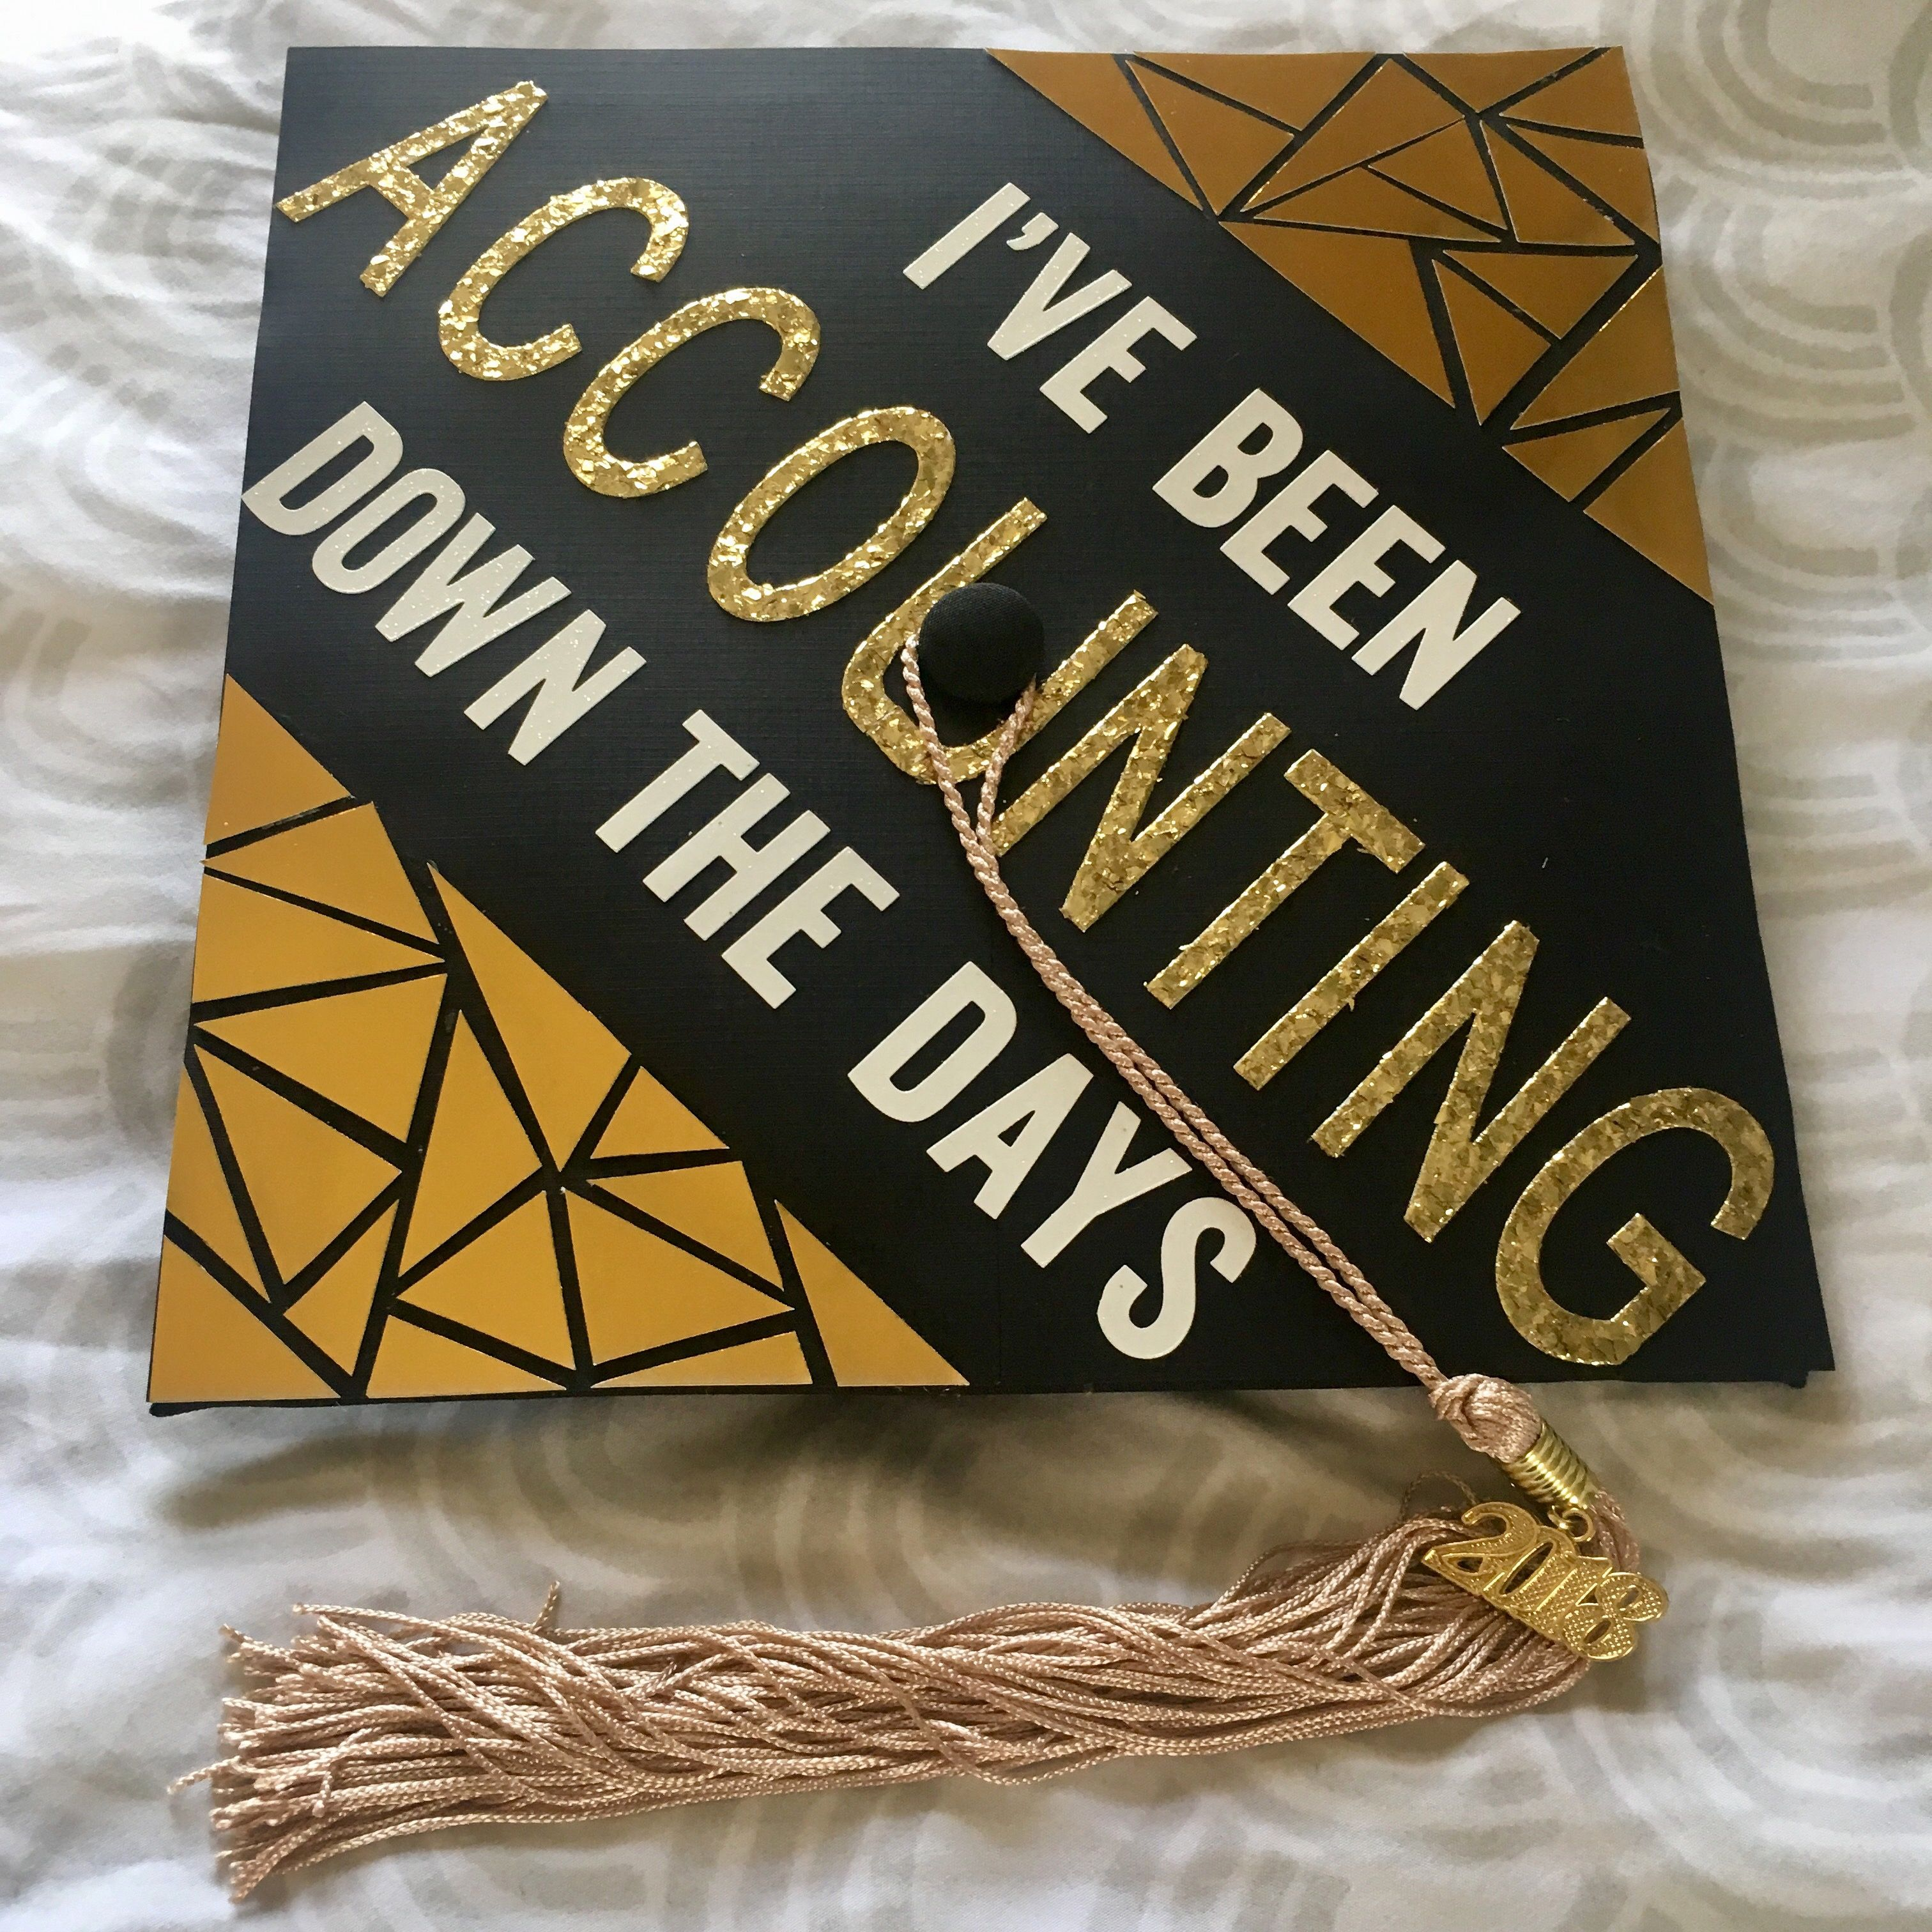 Ive Been Accounting Down The Days Til Graduation Love The Way My